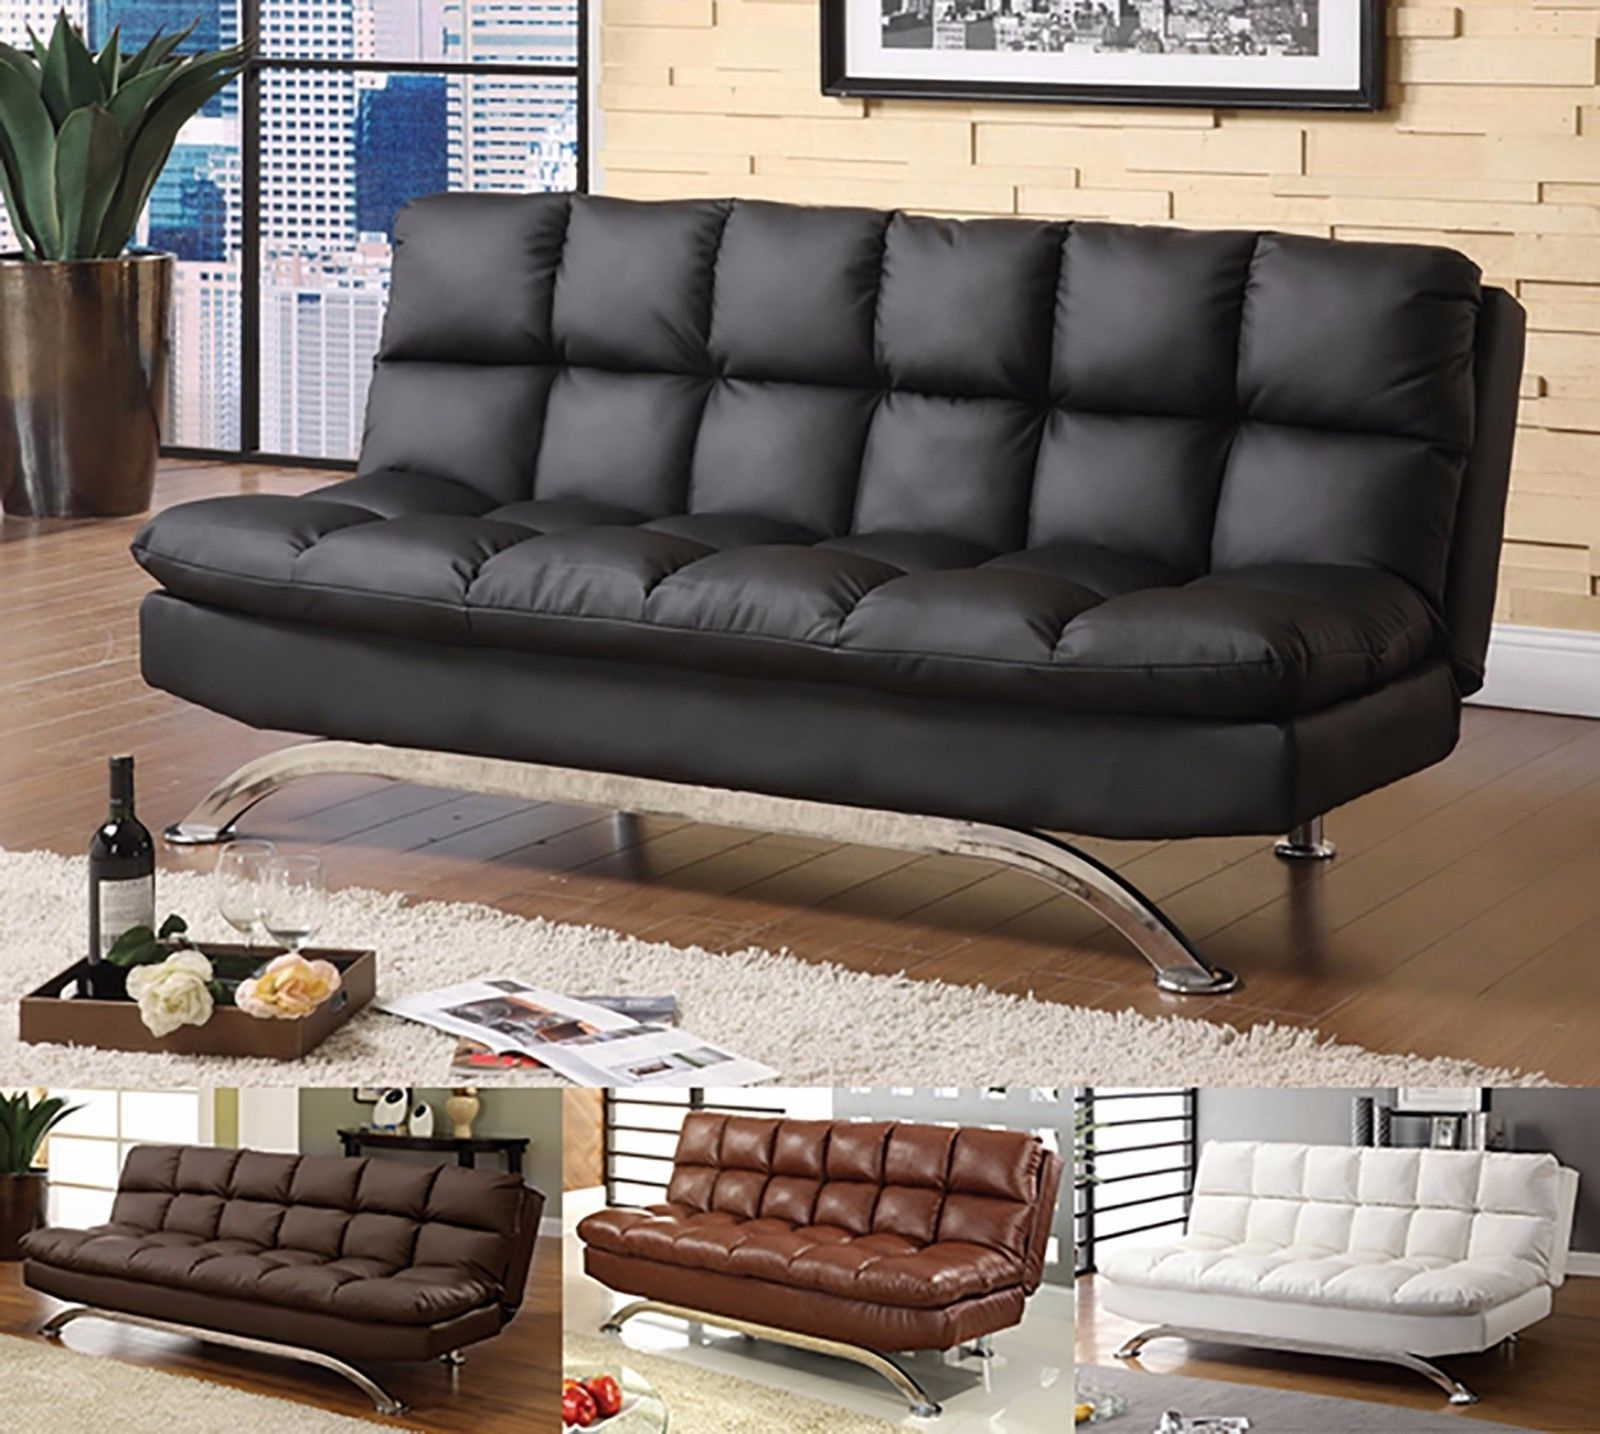 Furniture : Mattress Firm University Fold Out Couch Sleeper Pertaining To Most Current Tuscaloosa Sectional Sofas (View 3 of 20)